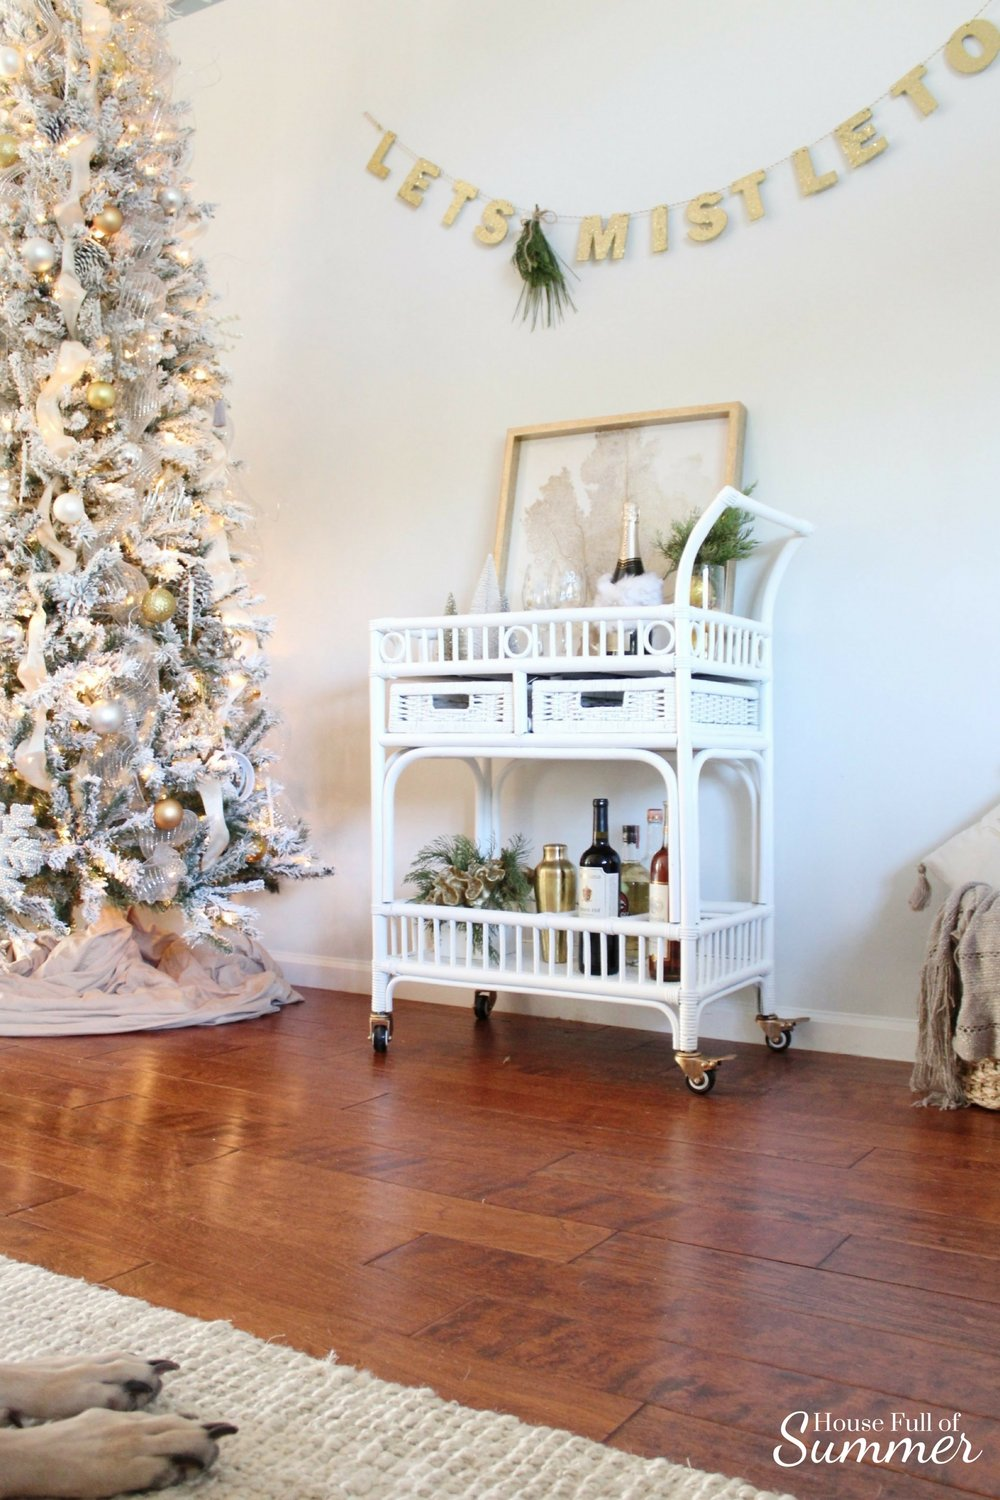 Christmas Home Tour | House Full of Summer blog hop - Cheerful Christmas Home Tourcoastal christmas neutral christmas decor, holiday home tour, florida christmas, bar cart, white bamboo rattan bar cart, lets mistletoe garland, diy pine swag